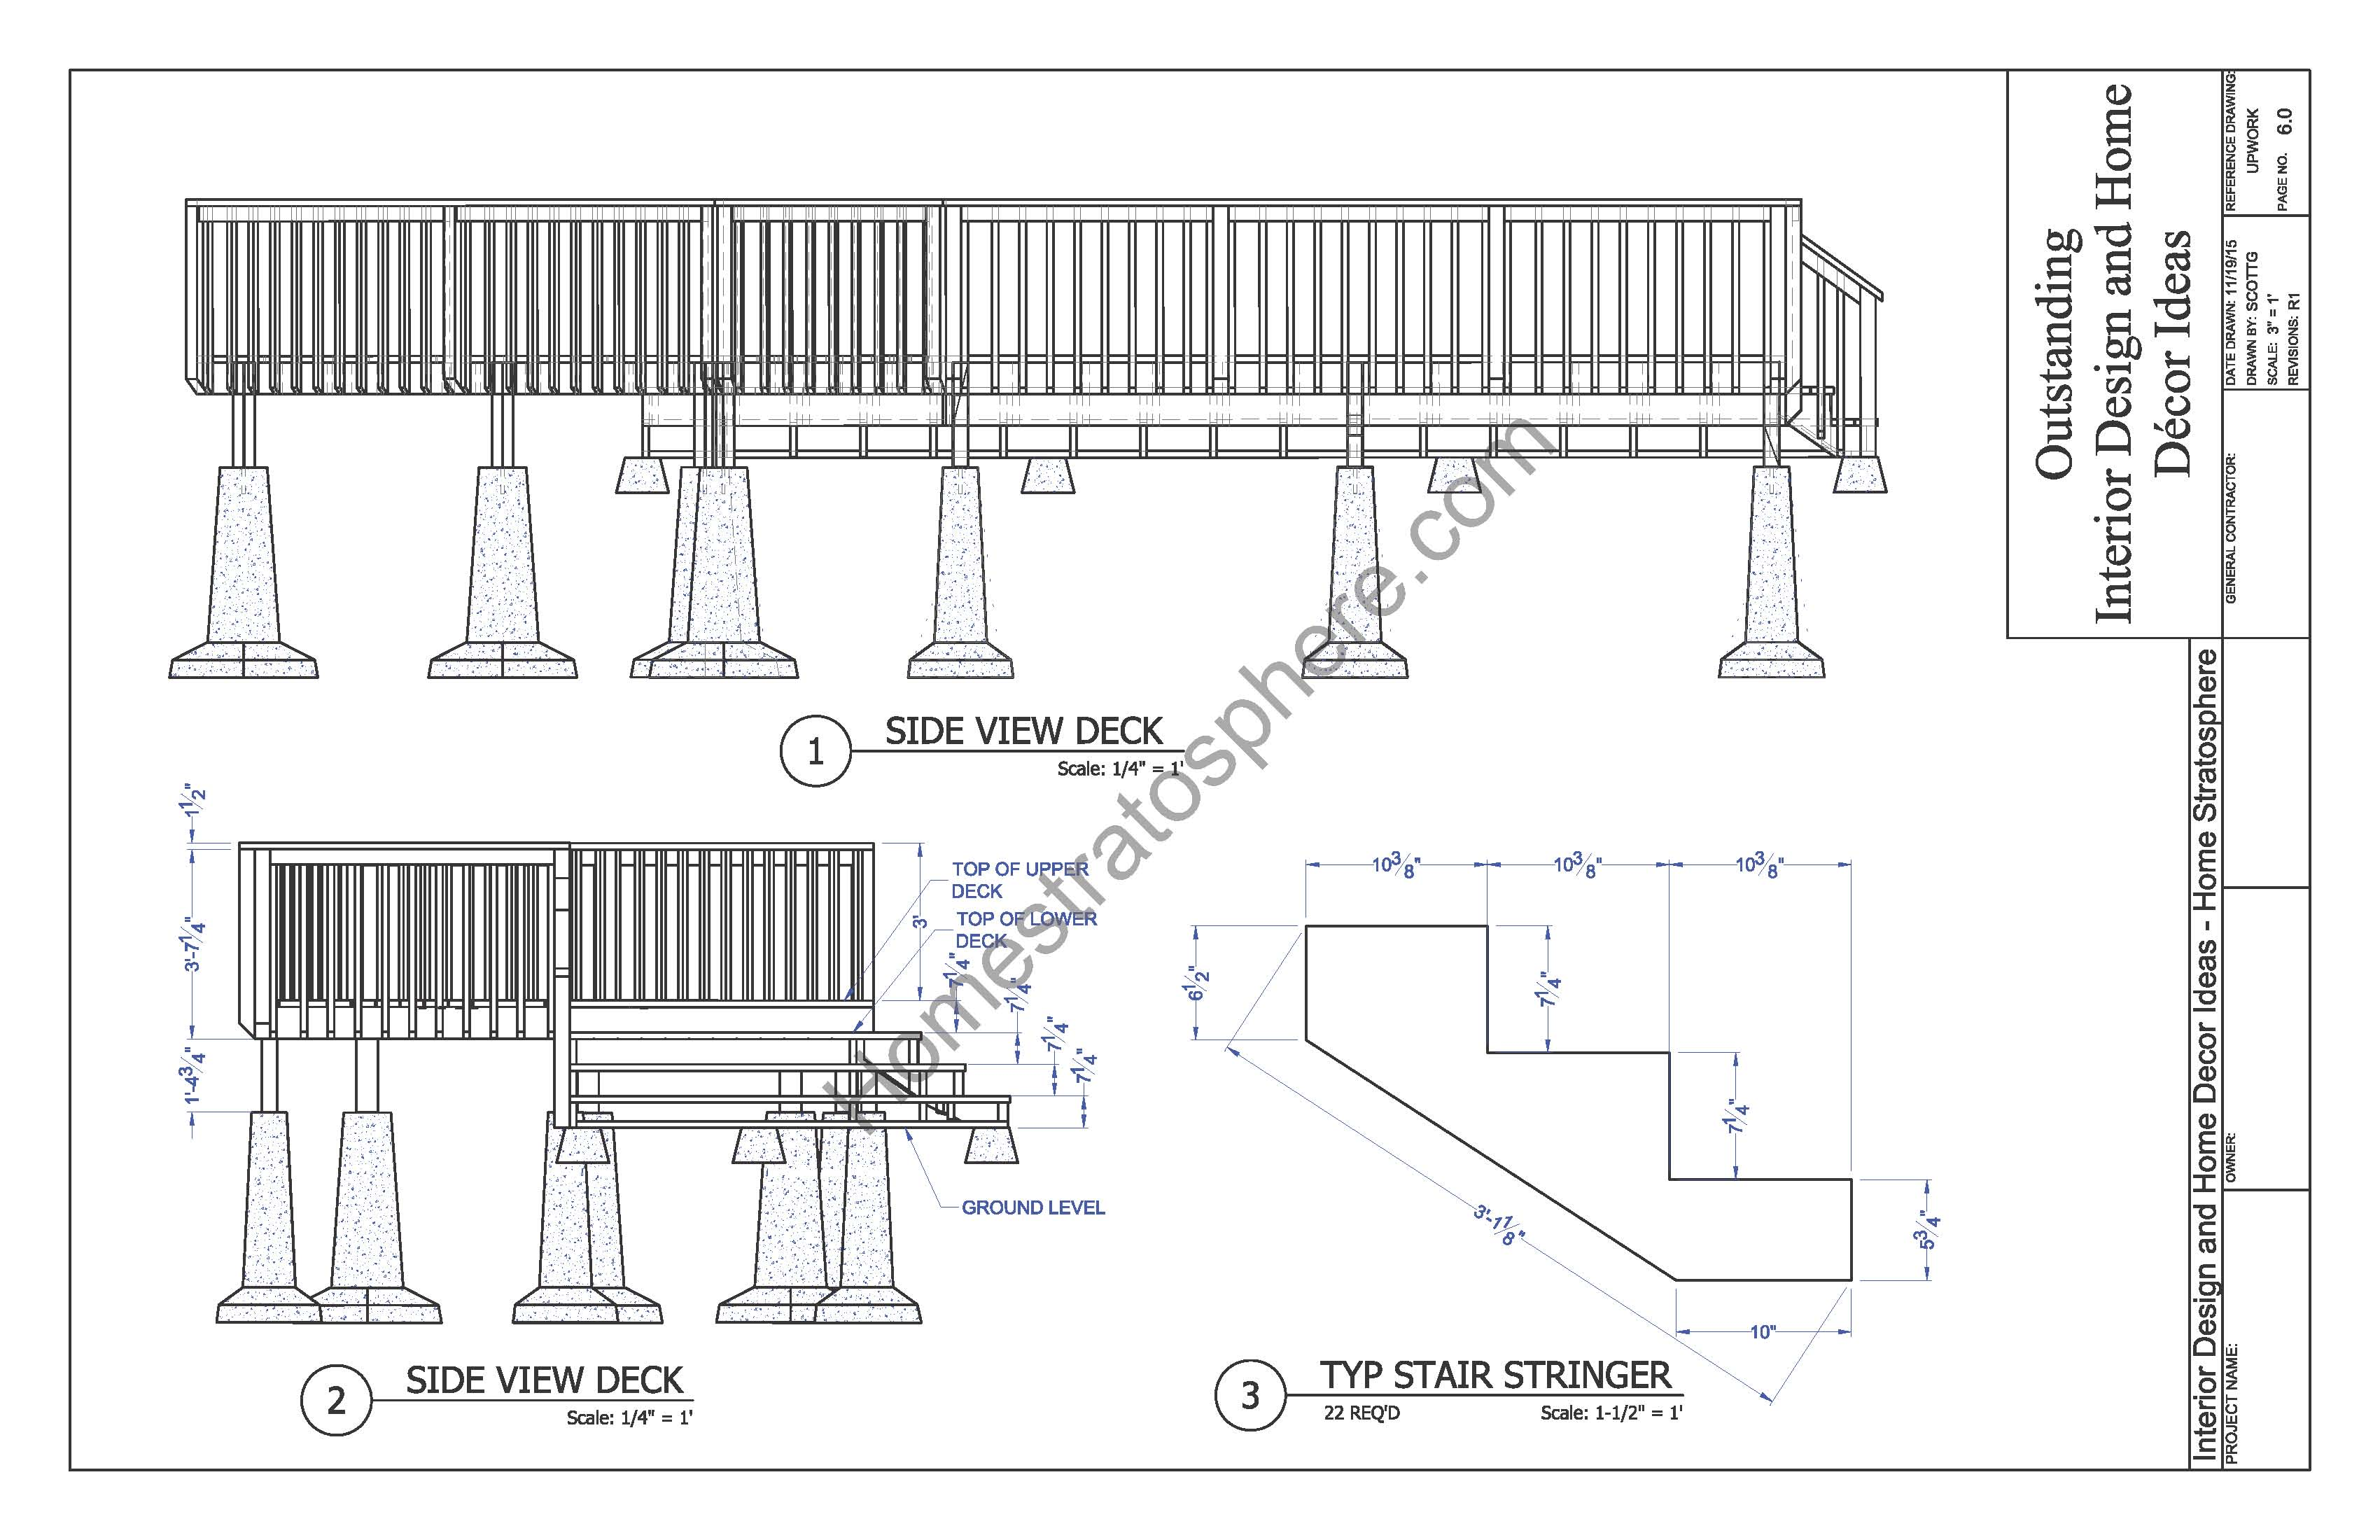 2 level deck plan blueprint free pdf download for Deck plans online